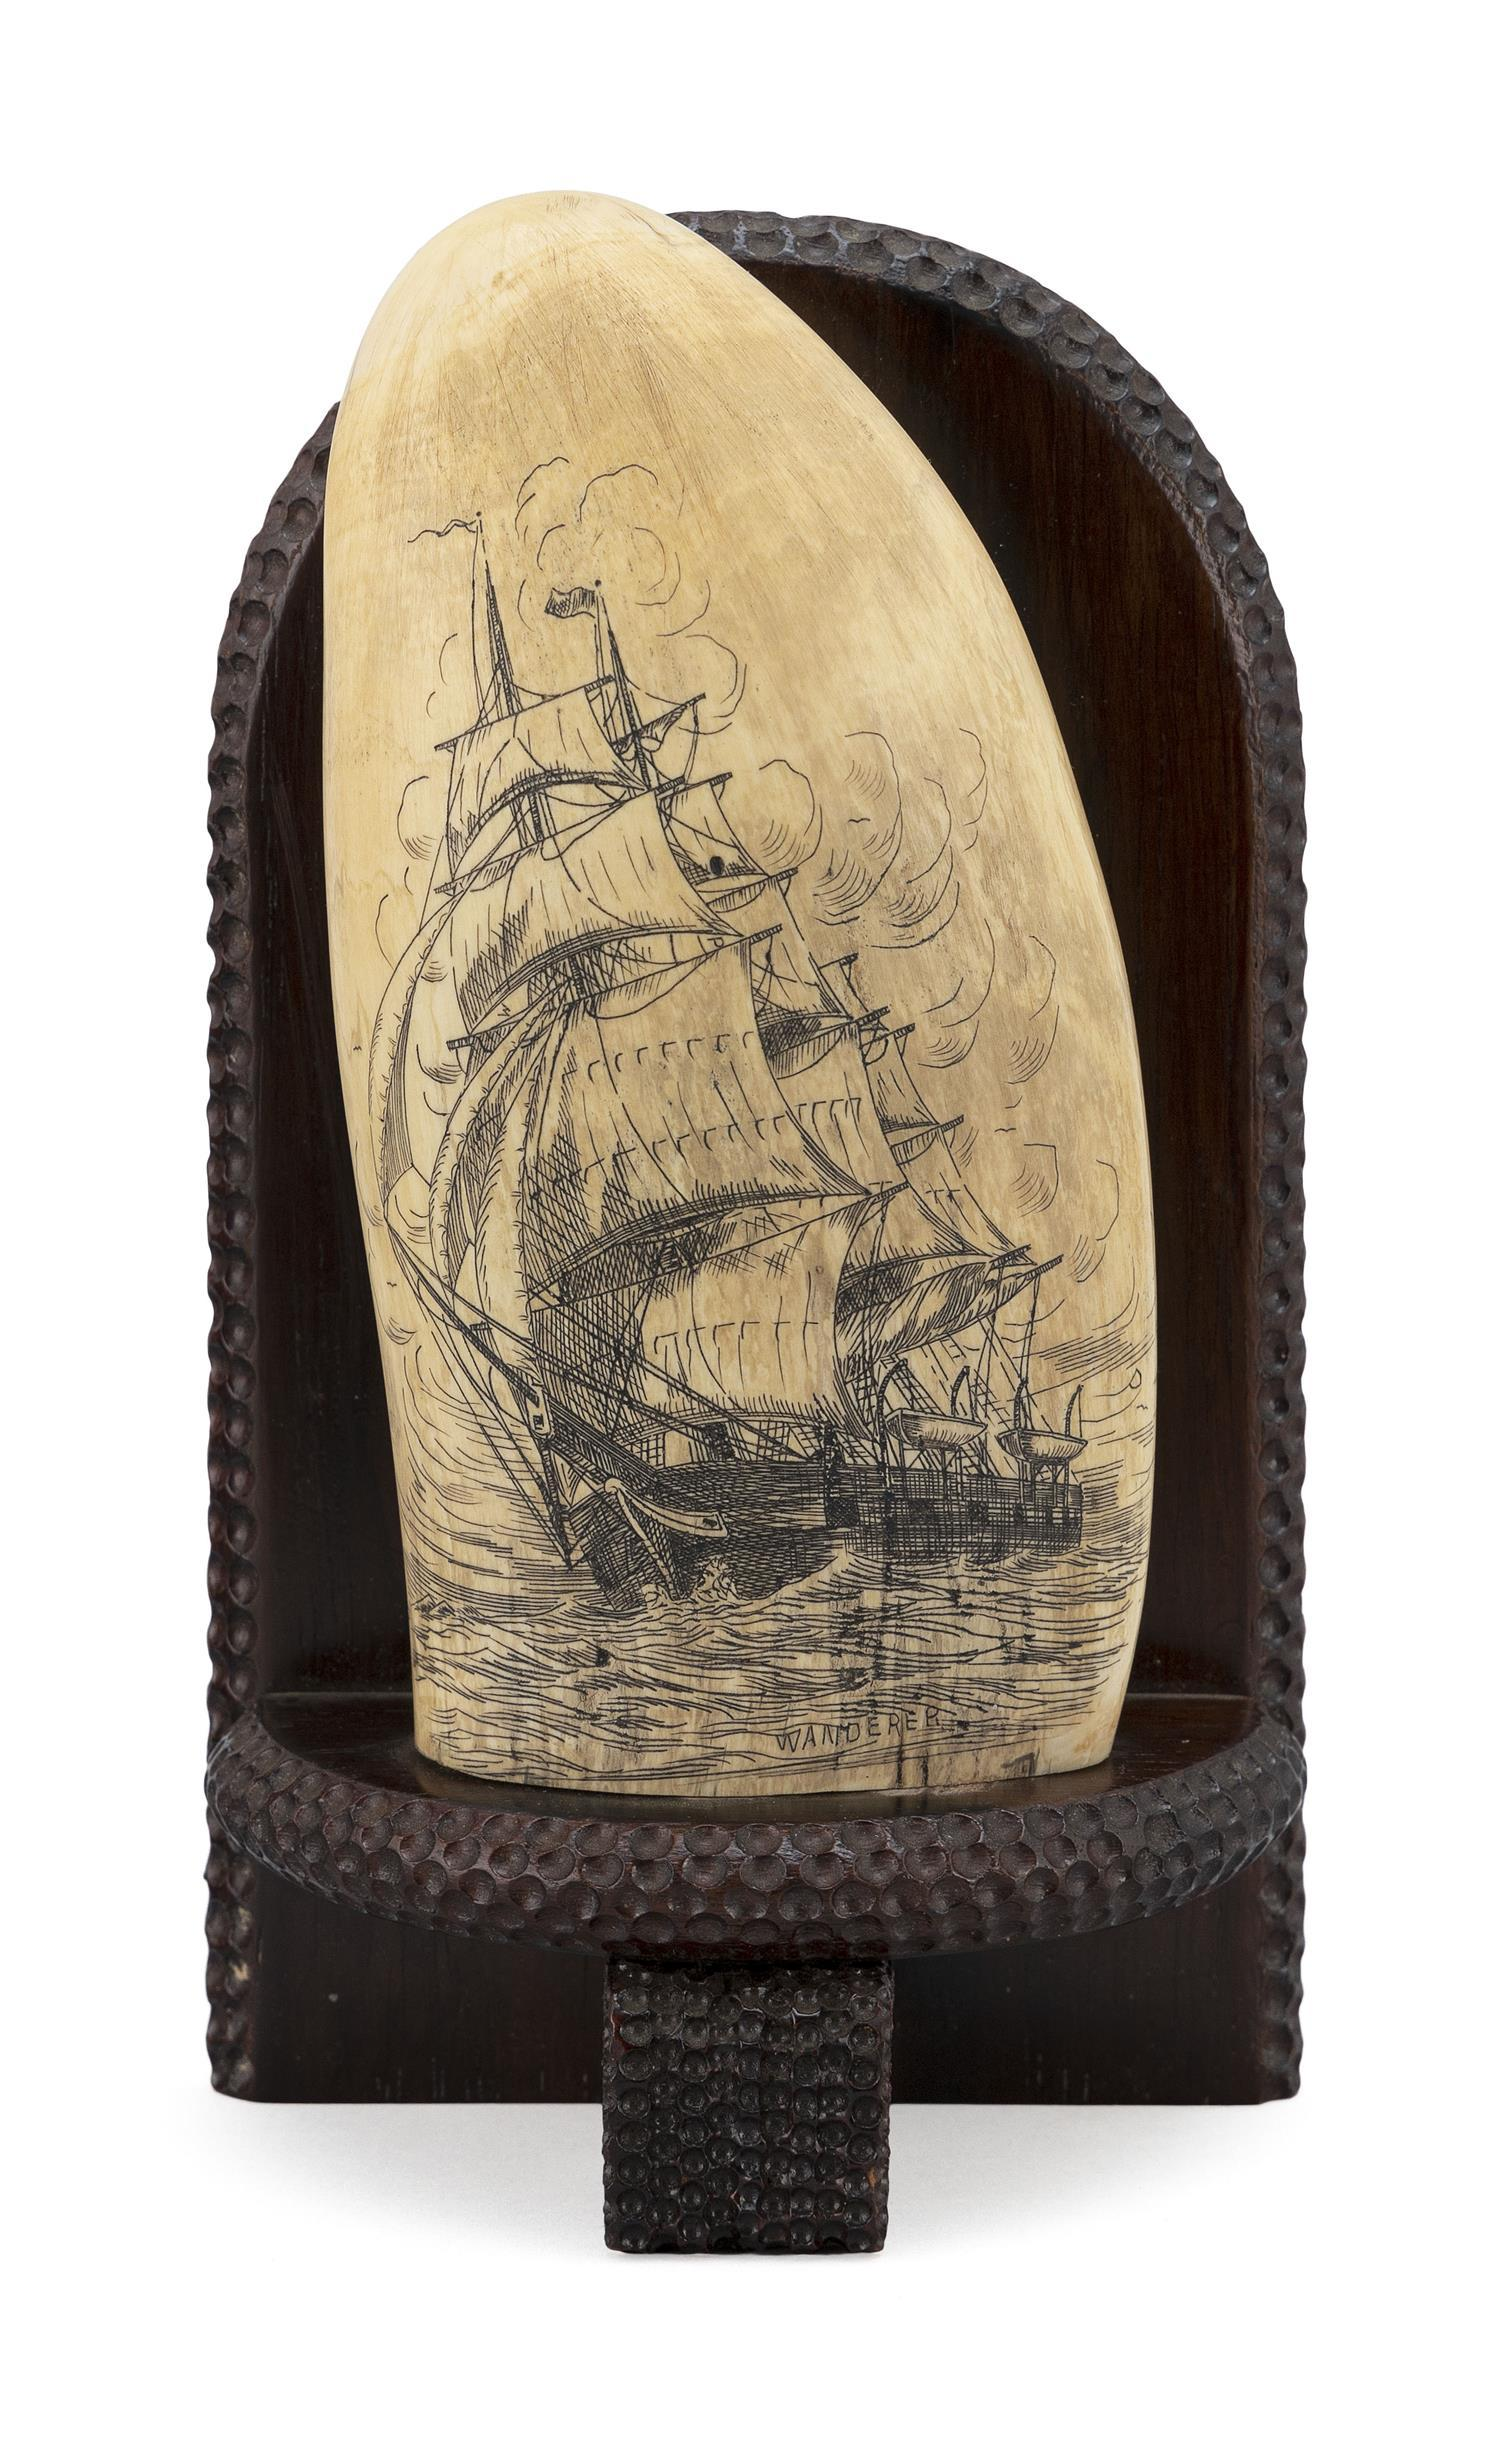 * ENGRAVED WHALE'S TOOTH BY WILLIAM PERRY Depicts a bow-view portrait of the whaleship Wanderer, with the ship's name incorporated i.